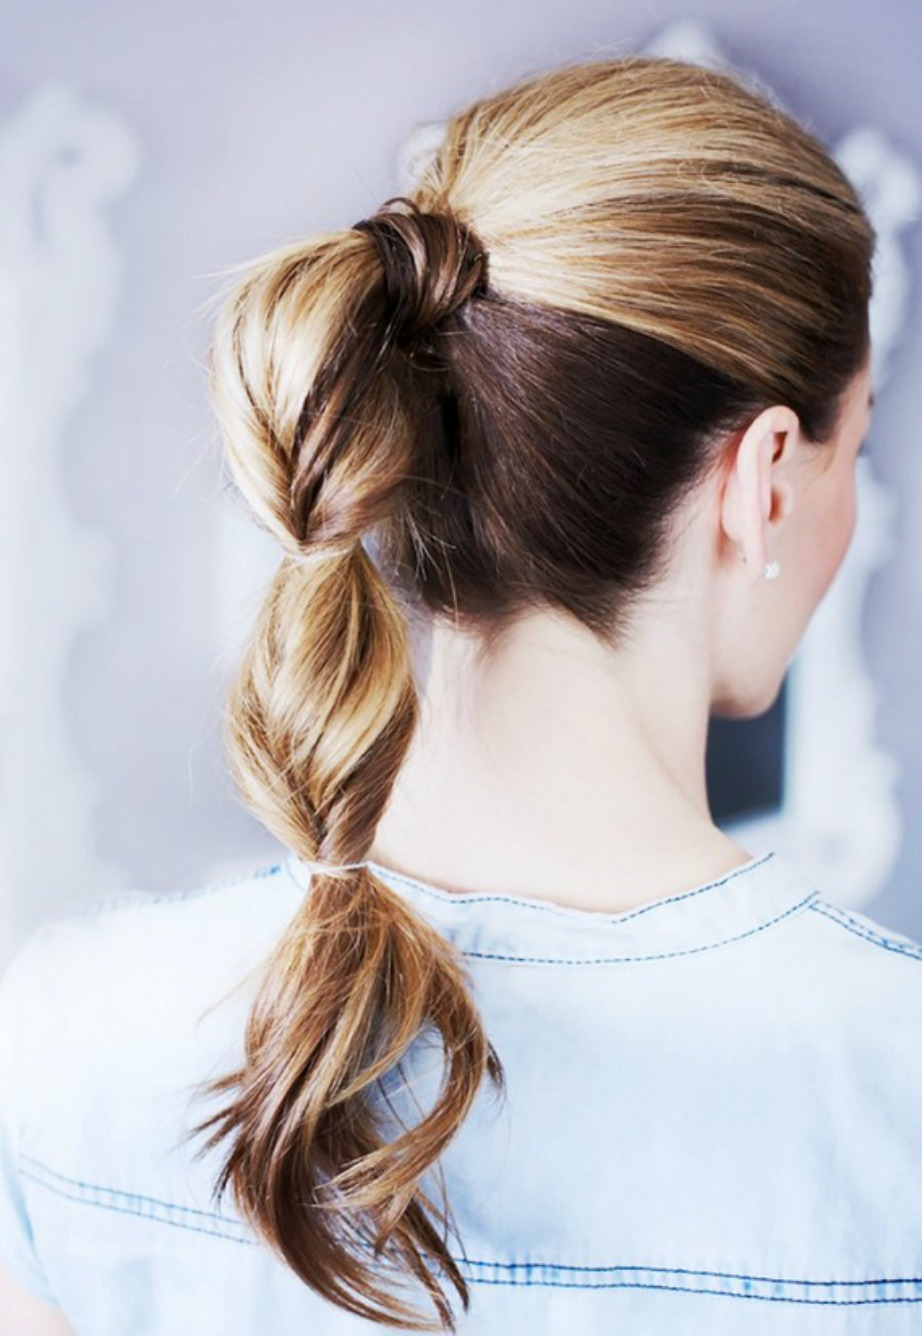 thehomeissue_hair03